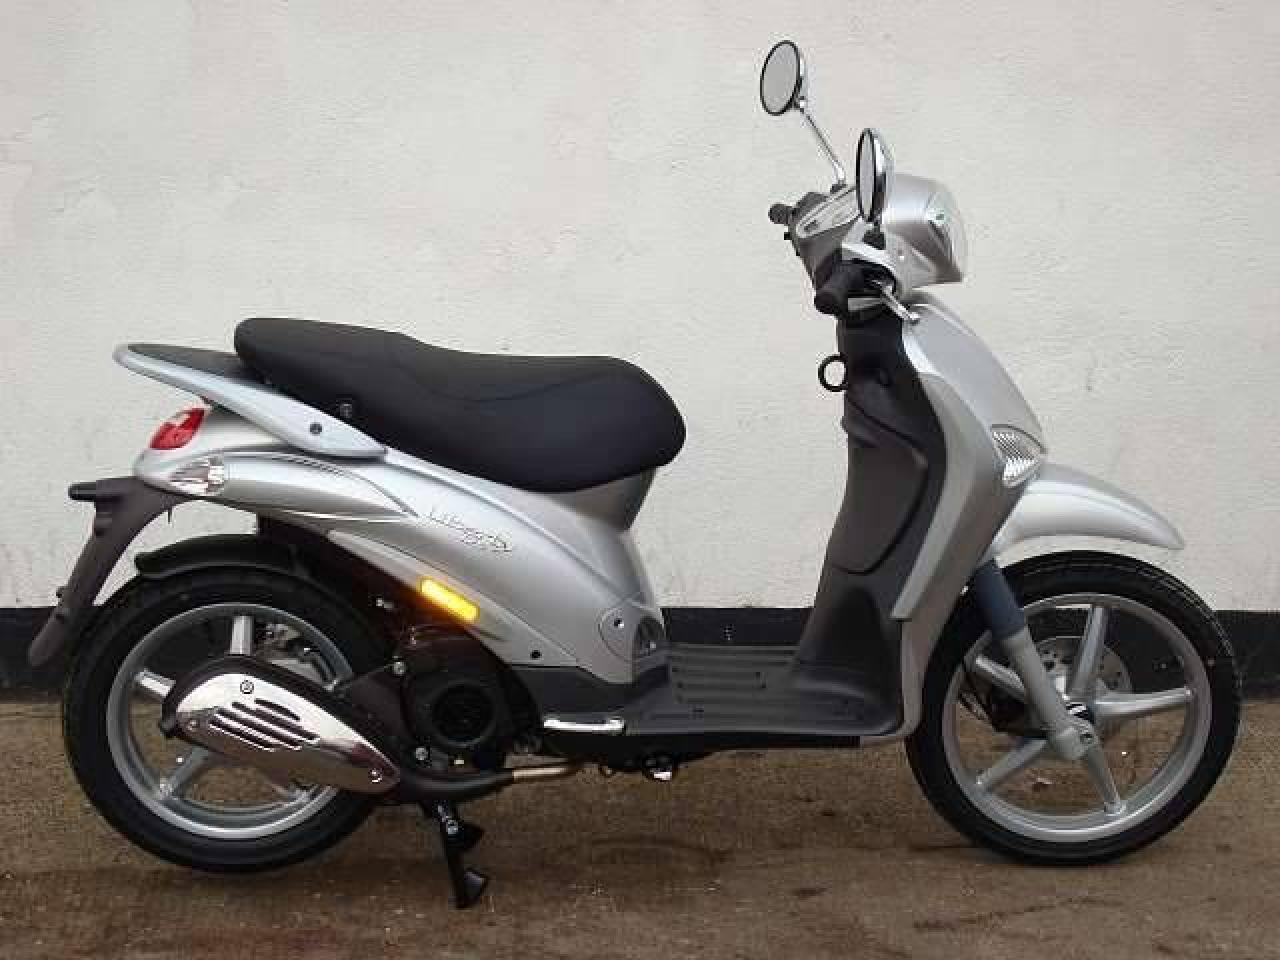 piaggio piaggio liberty 125 moto zombdrive com. Black Bedroom Furniture Sets. Home Design Ideas